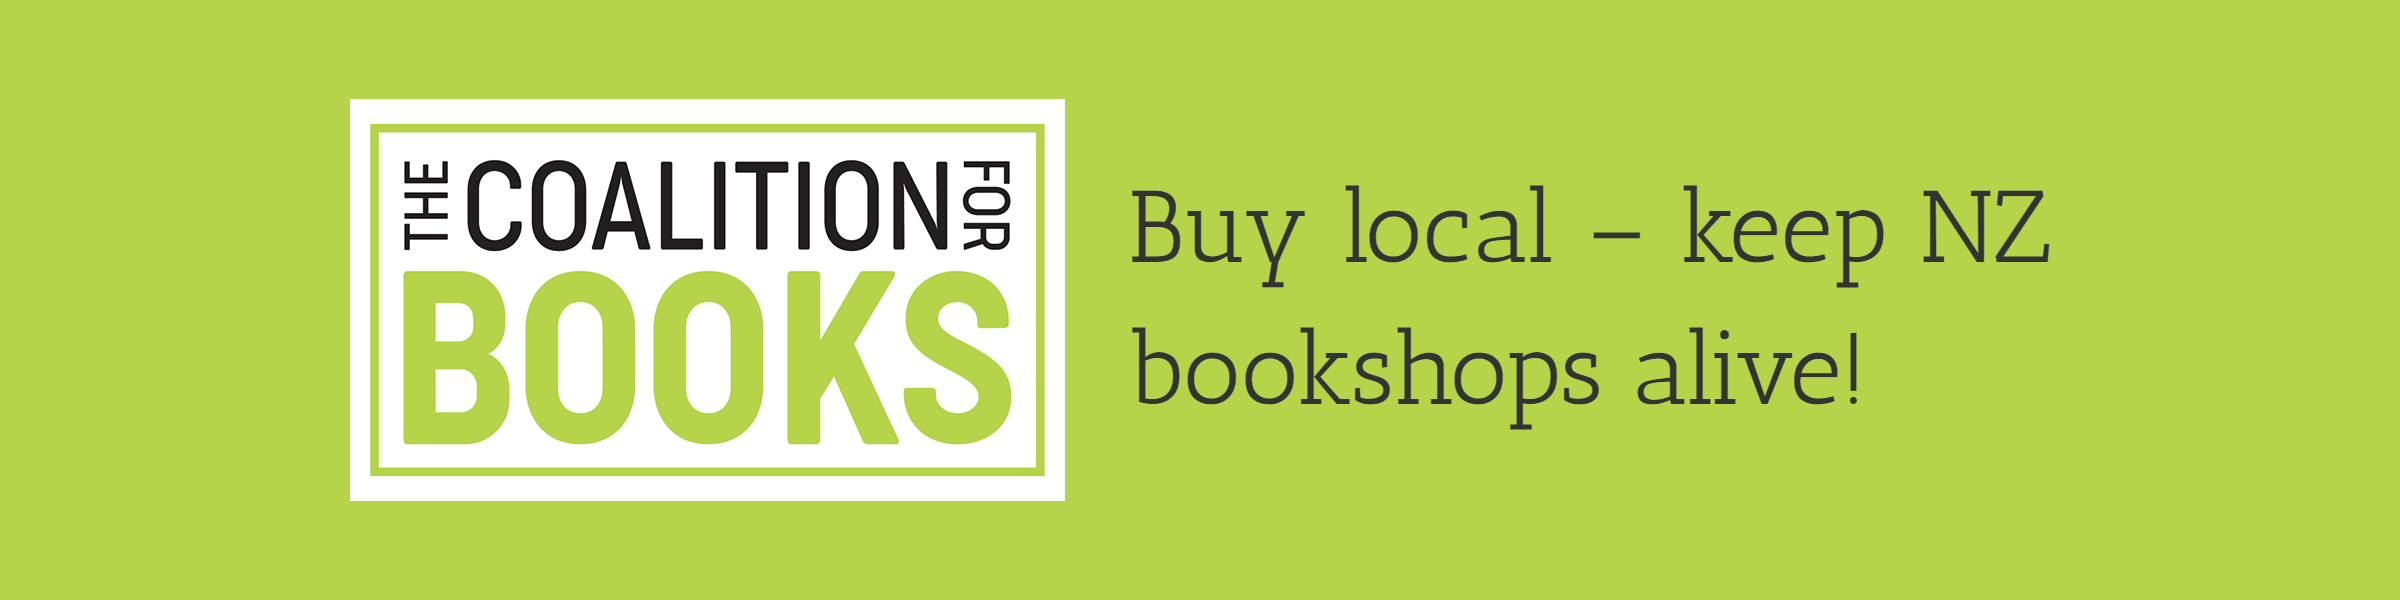 Buy books from your local bookseller.